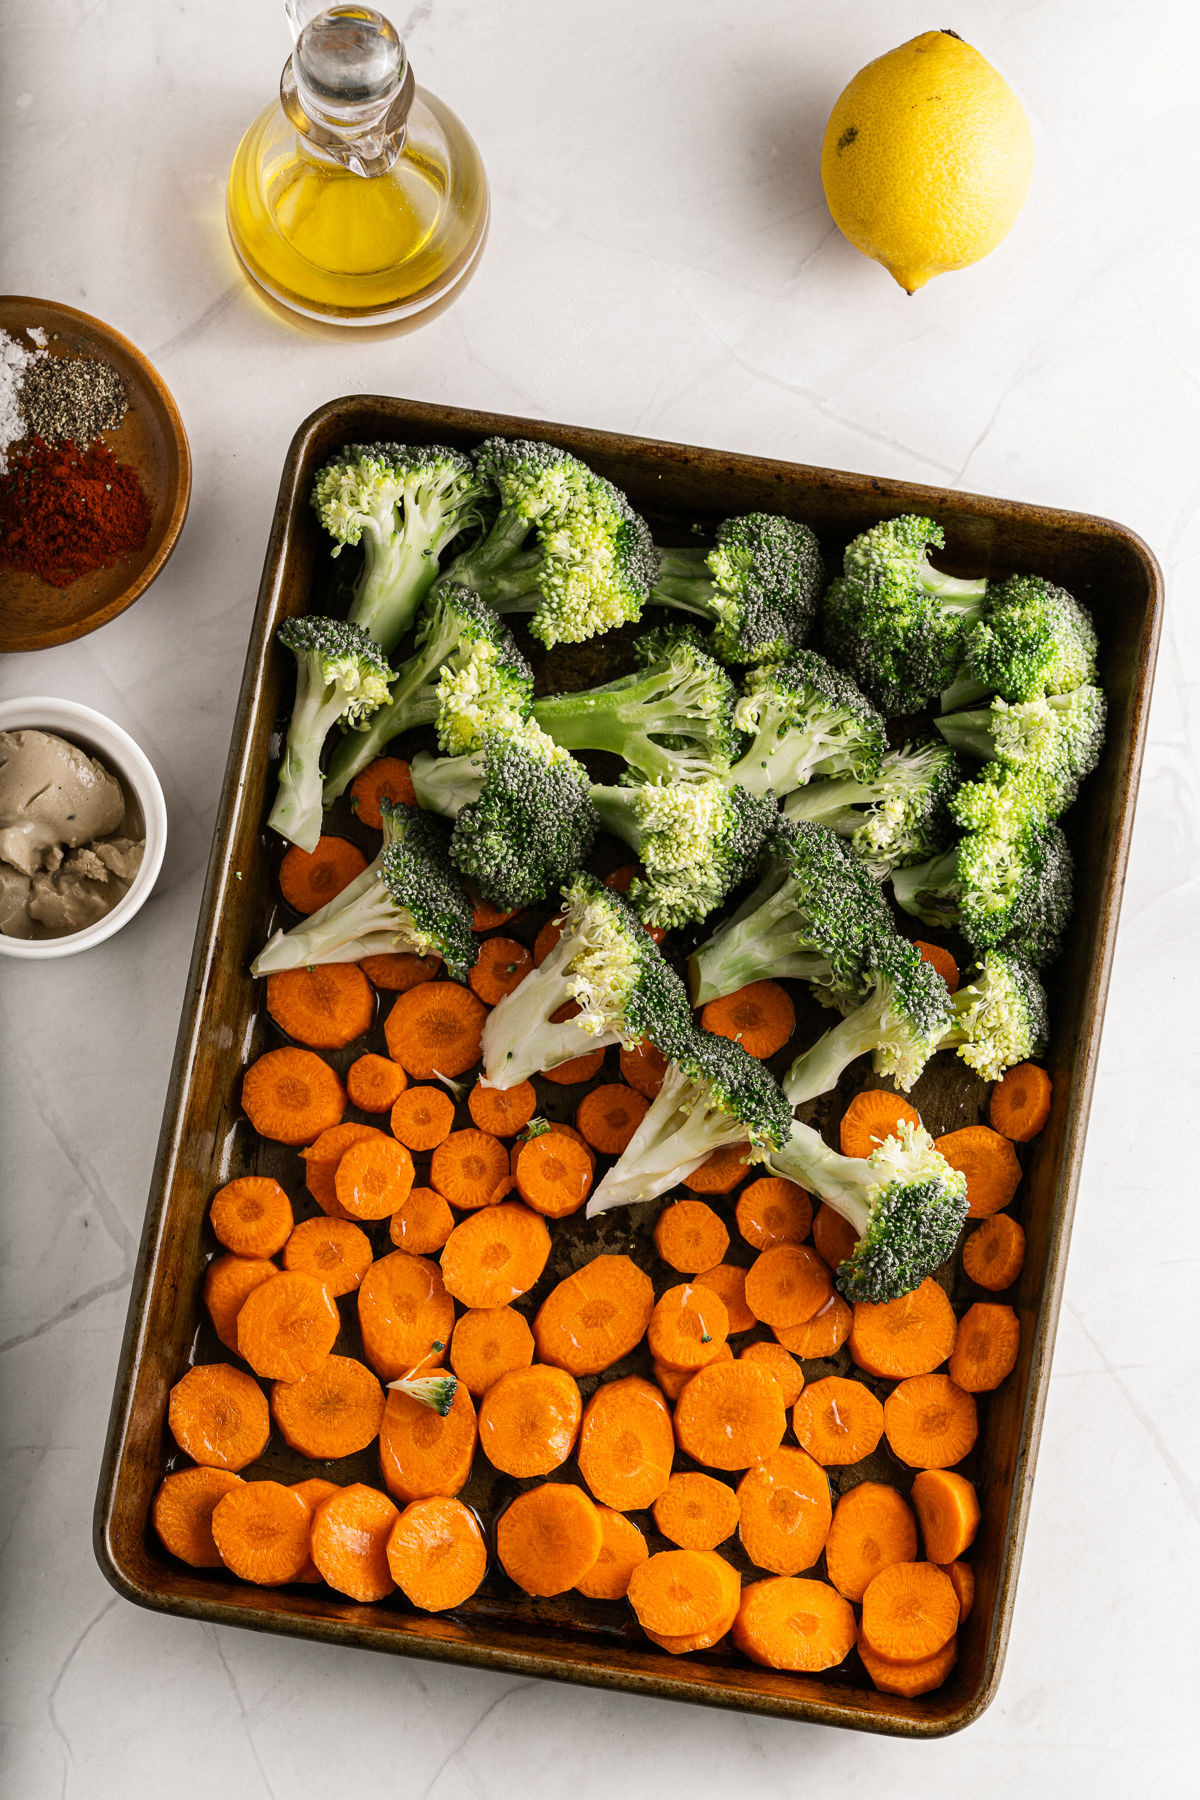 Broccoli and carrot slices on cookie sheet for roasting.